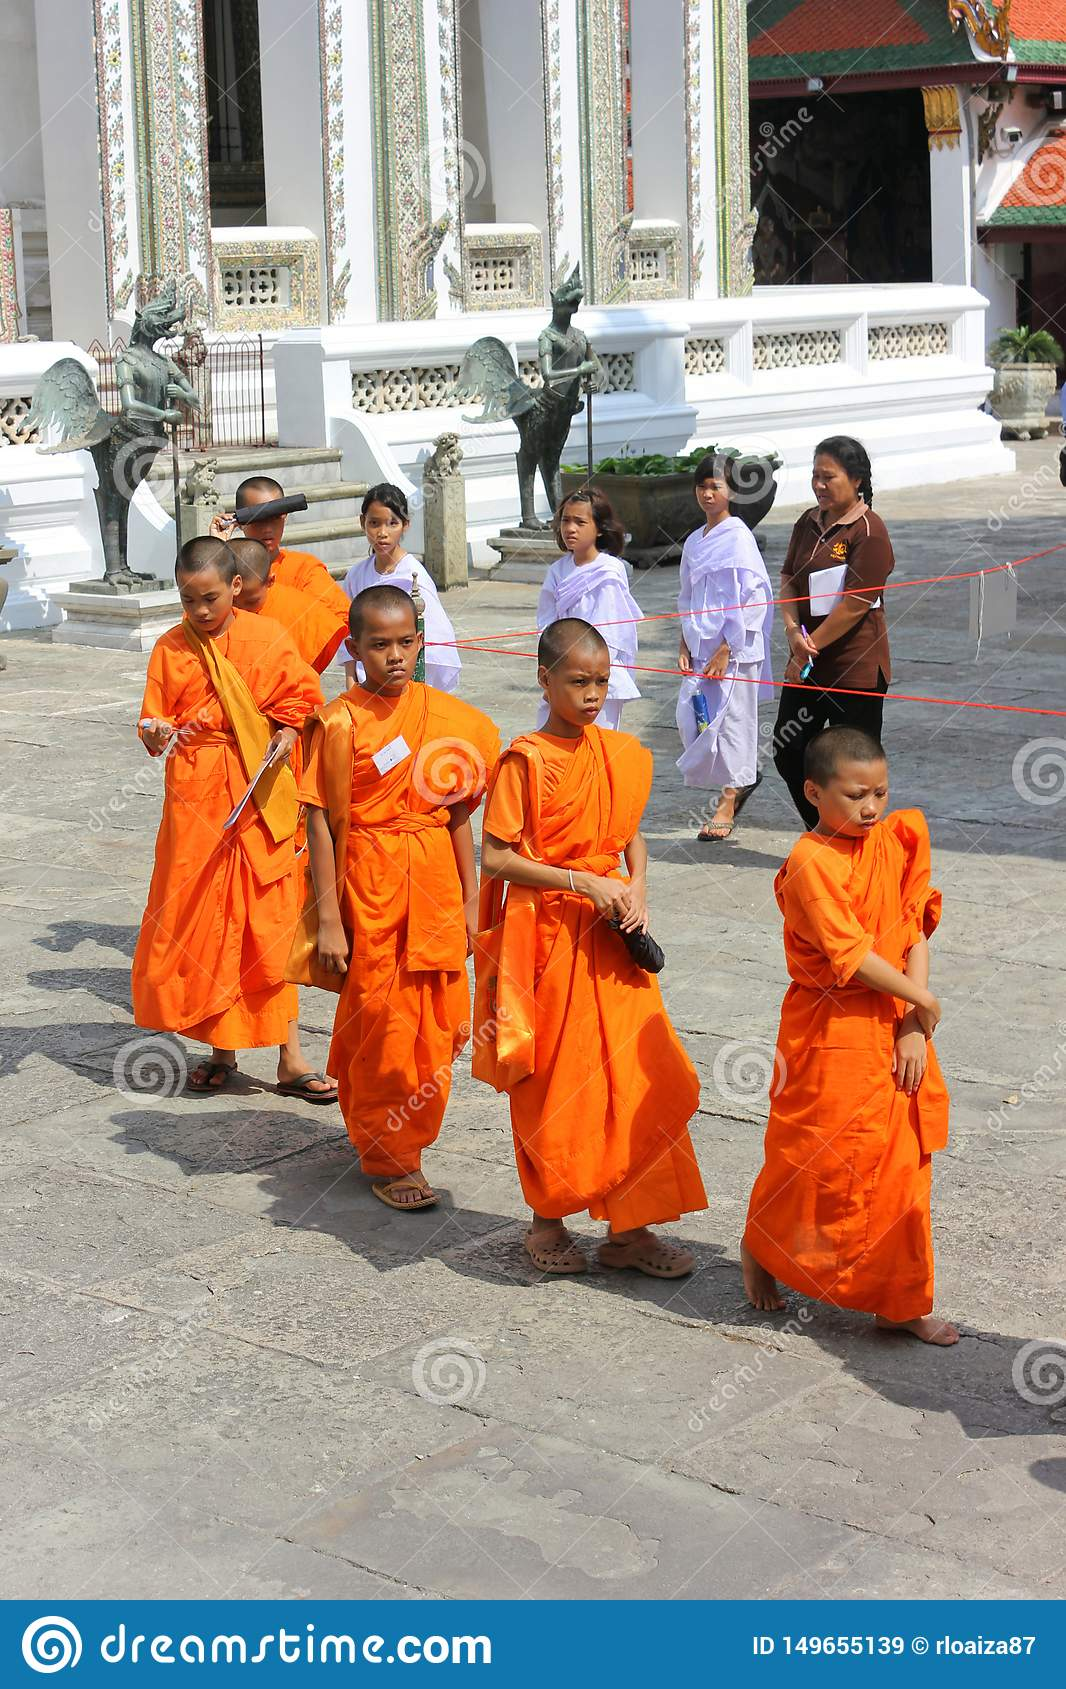 Bangkok, Thailand - April 29, 2014. Group of Asian monks walking through the temple of the Emerald Buddha in Thailand